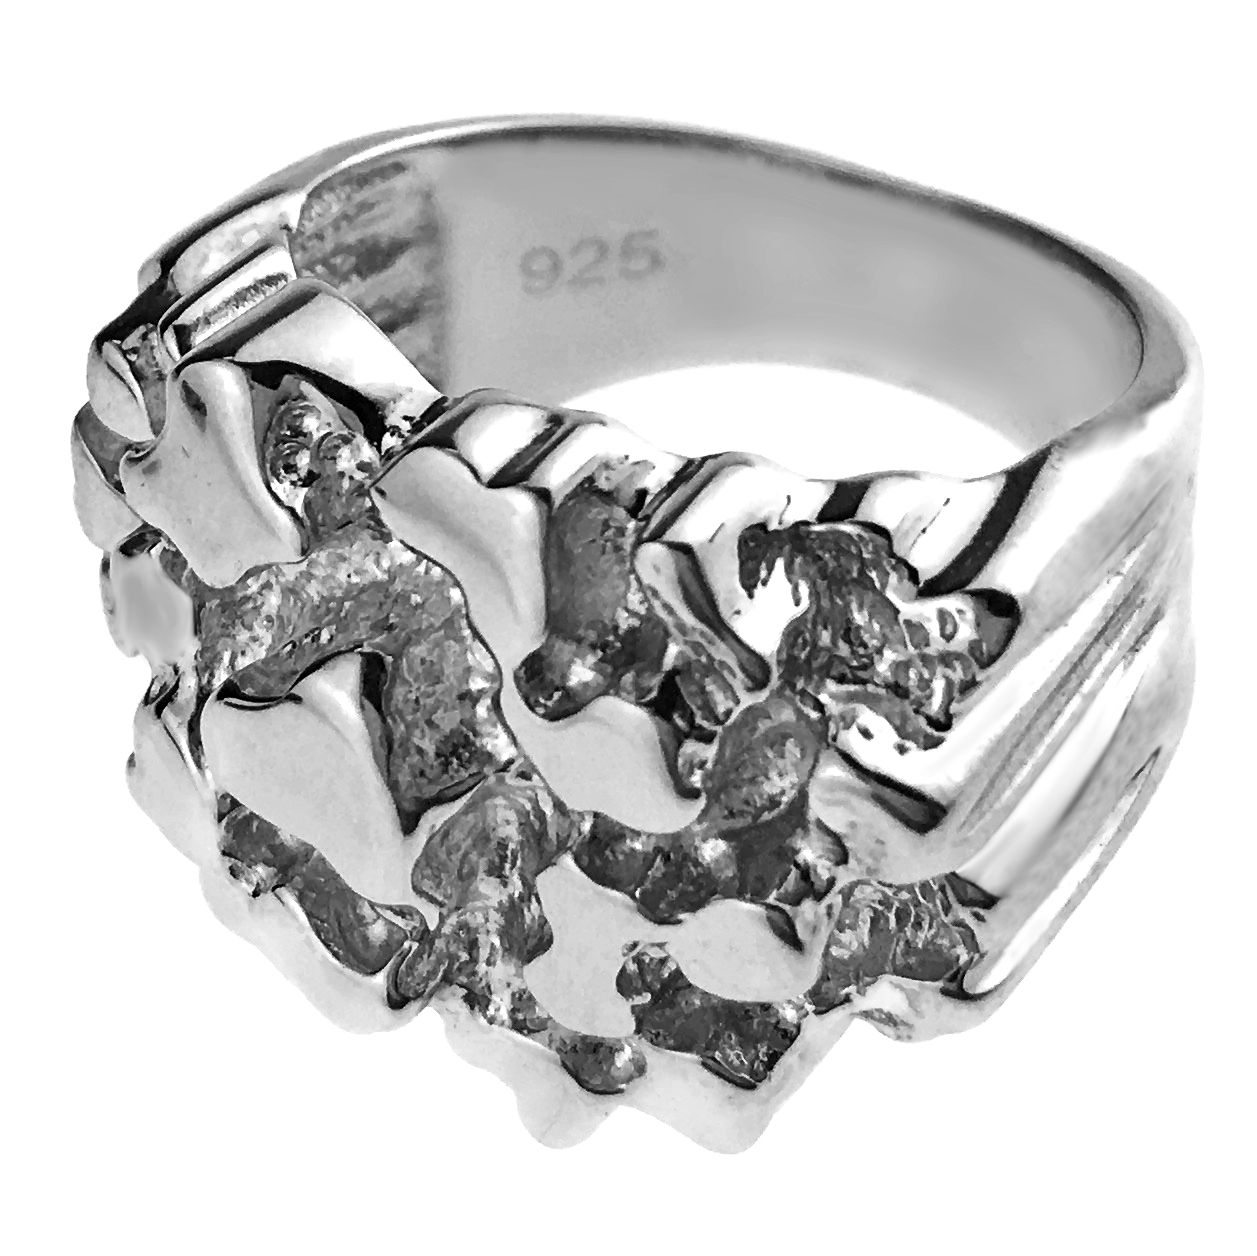 925 Sterling Silver Solid Nugget Ring Sizes 9-12